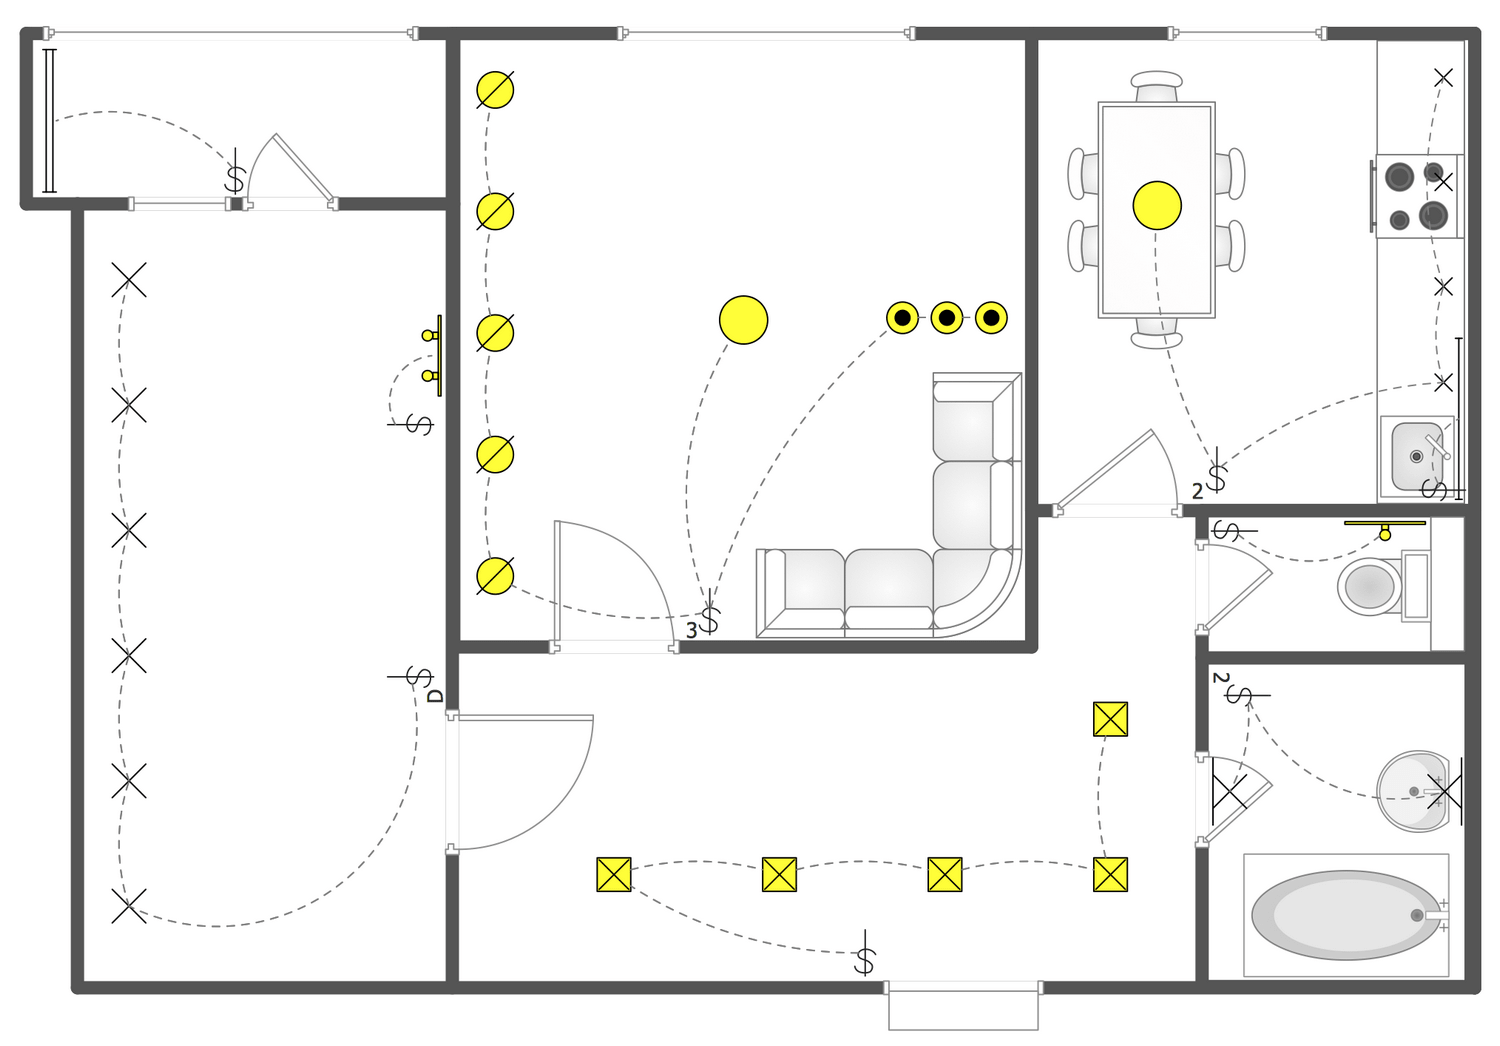 Reflected Ceiling Plans Solution Conceptdraw Com